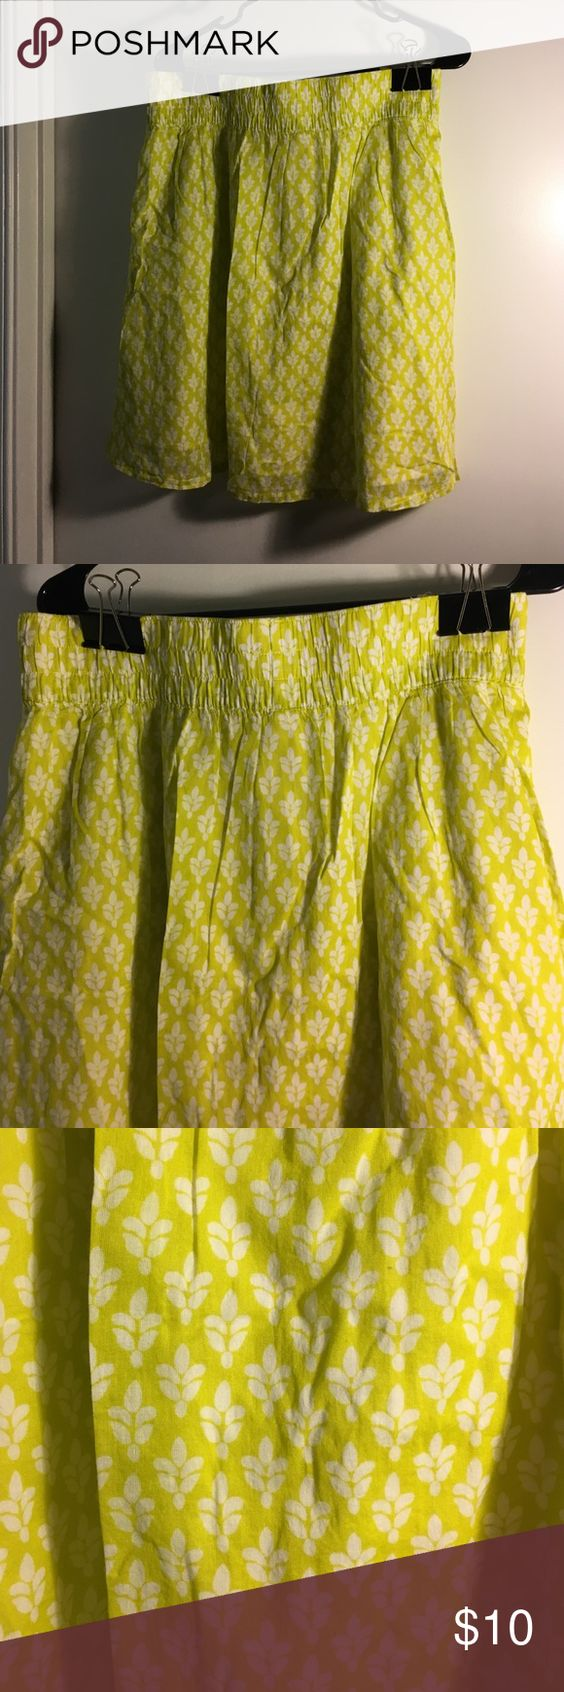 Elastic waist skirt lime green and white Elastic waist skirt Old Navy Skirts Midi